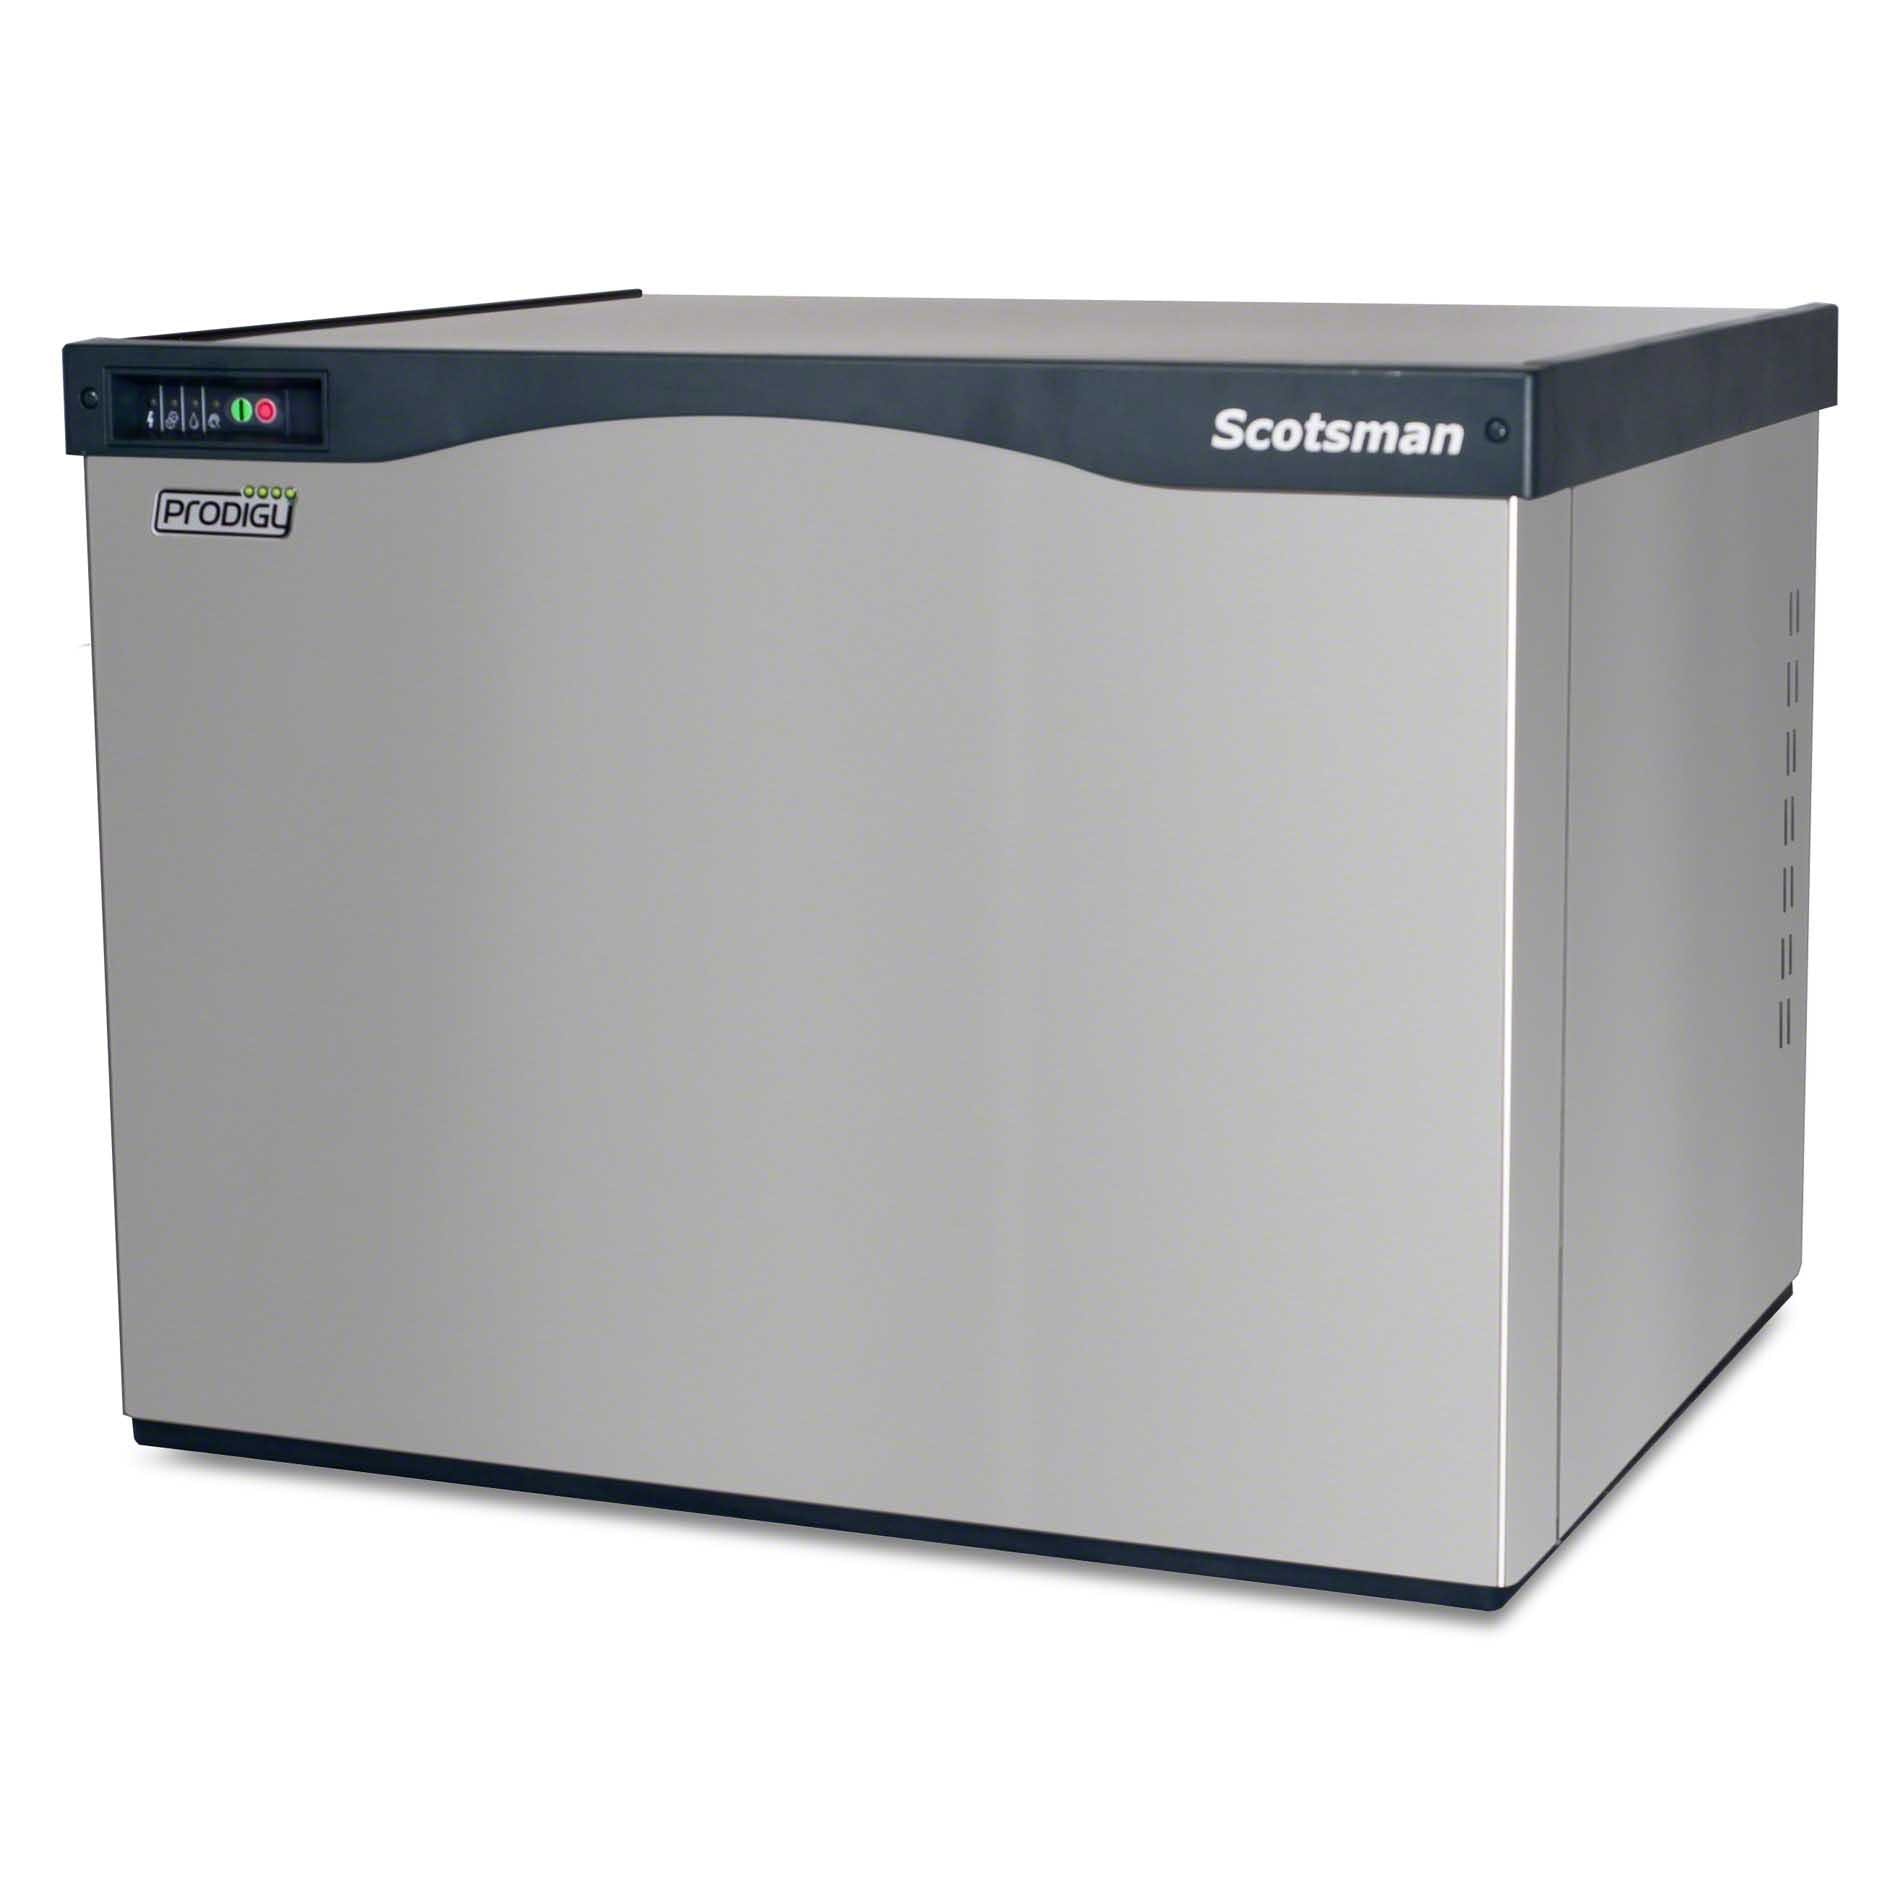 Scotsman - C0530SA-32A 562 lb Half Size Cube Ice Machine - Prodigy Series Ice machine sold by Food Service Warehouse